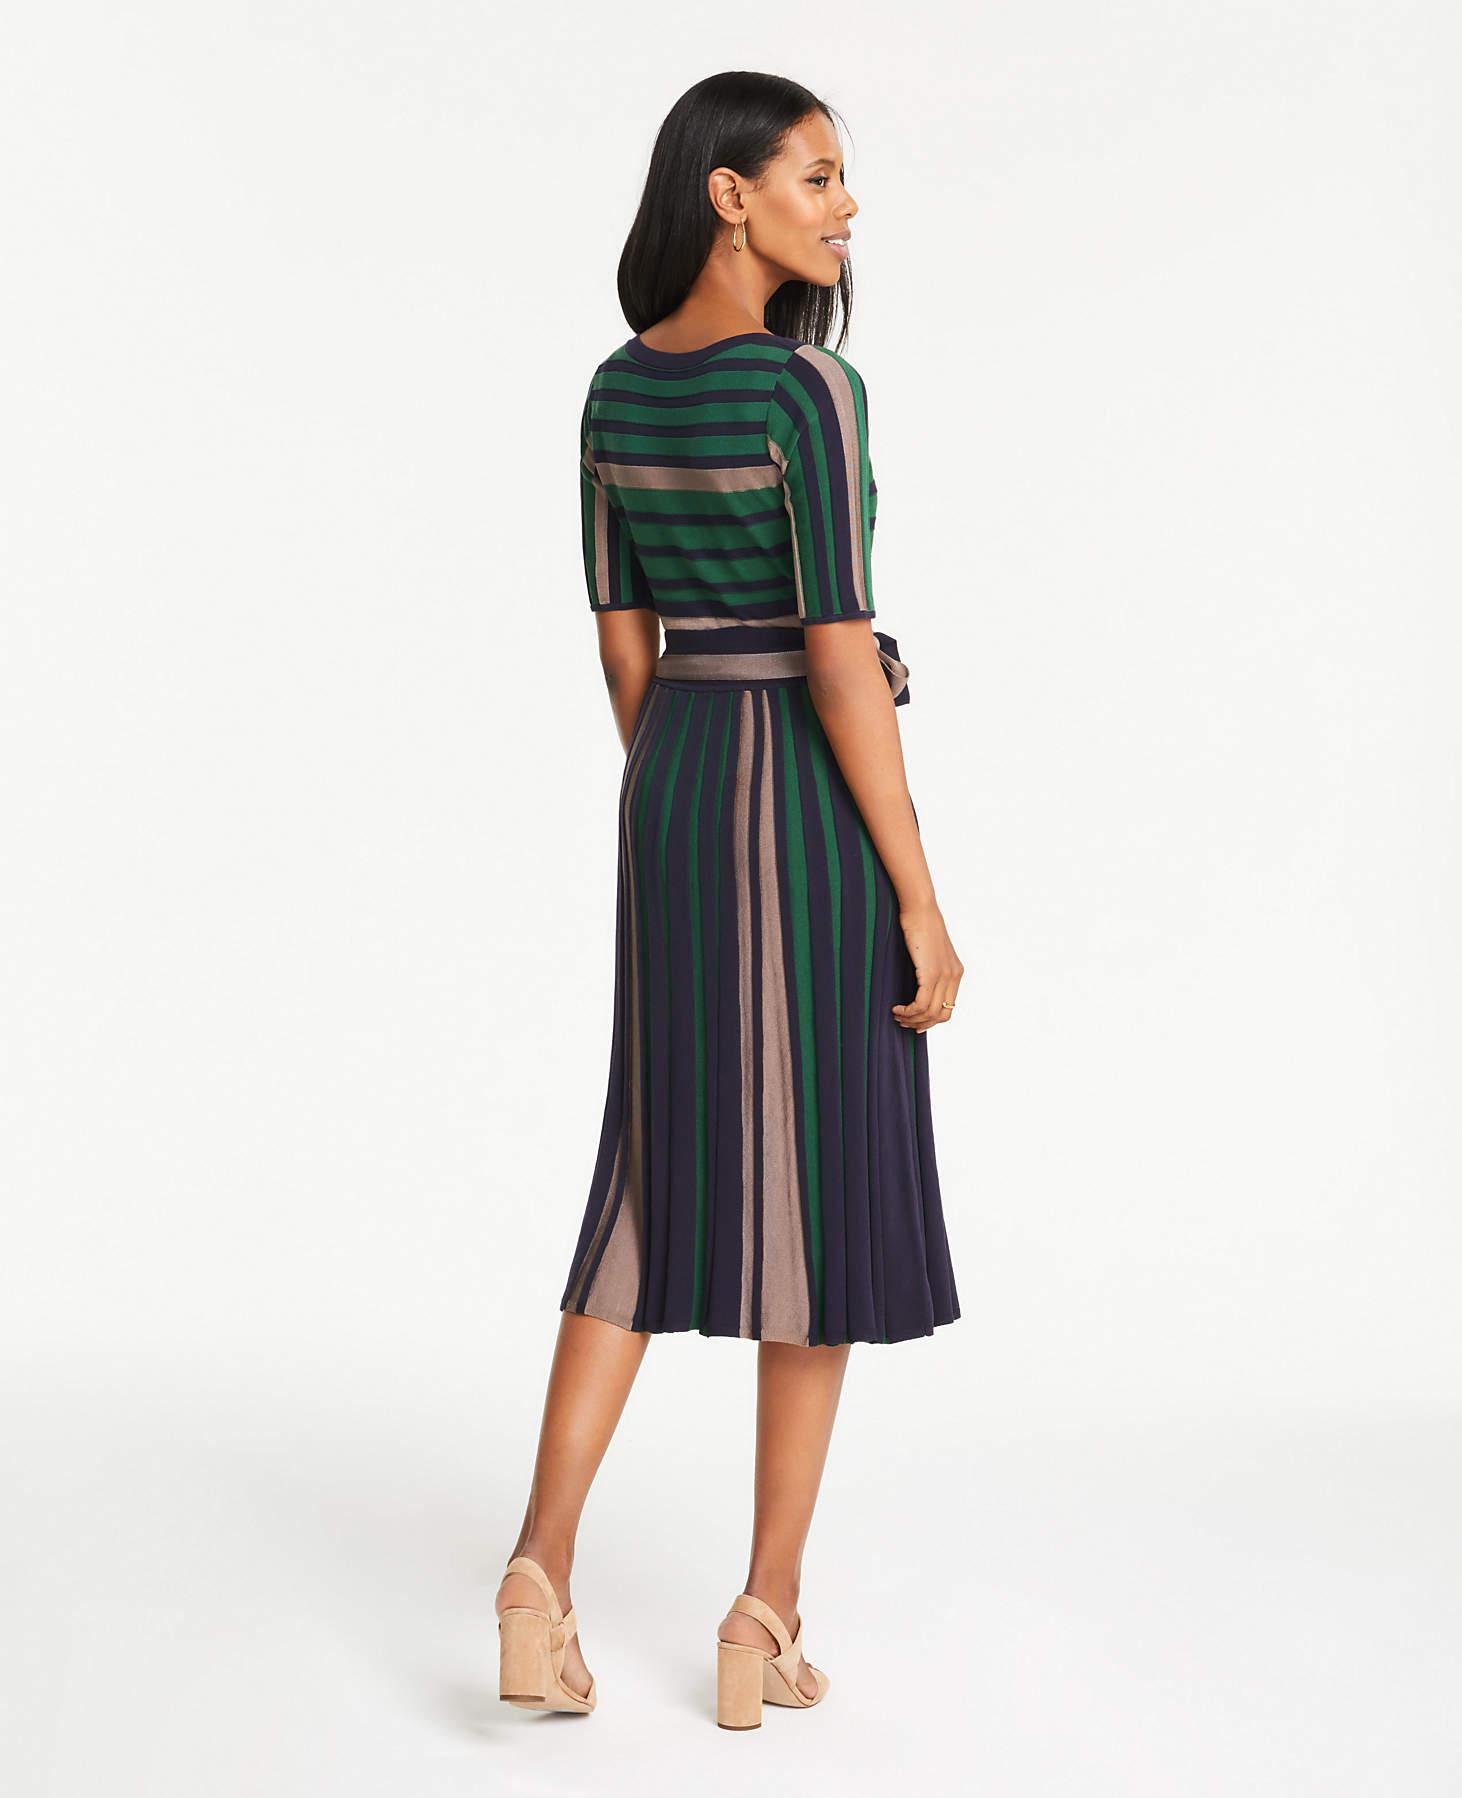 fe6f4cce027 Ann Taylor - Green Petite Mixed Stripe Belted Sweater Dress - Lyst. View  fullscreen